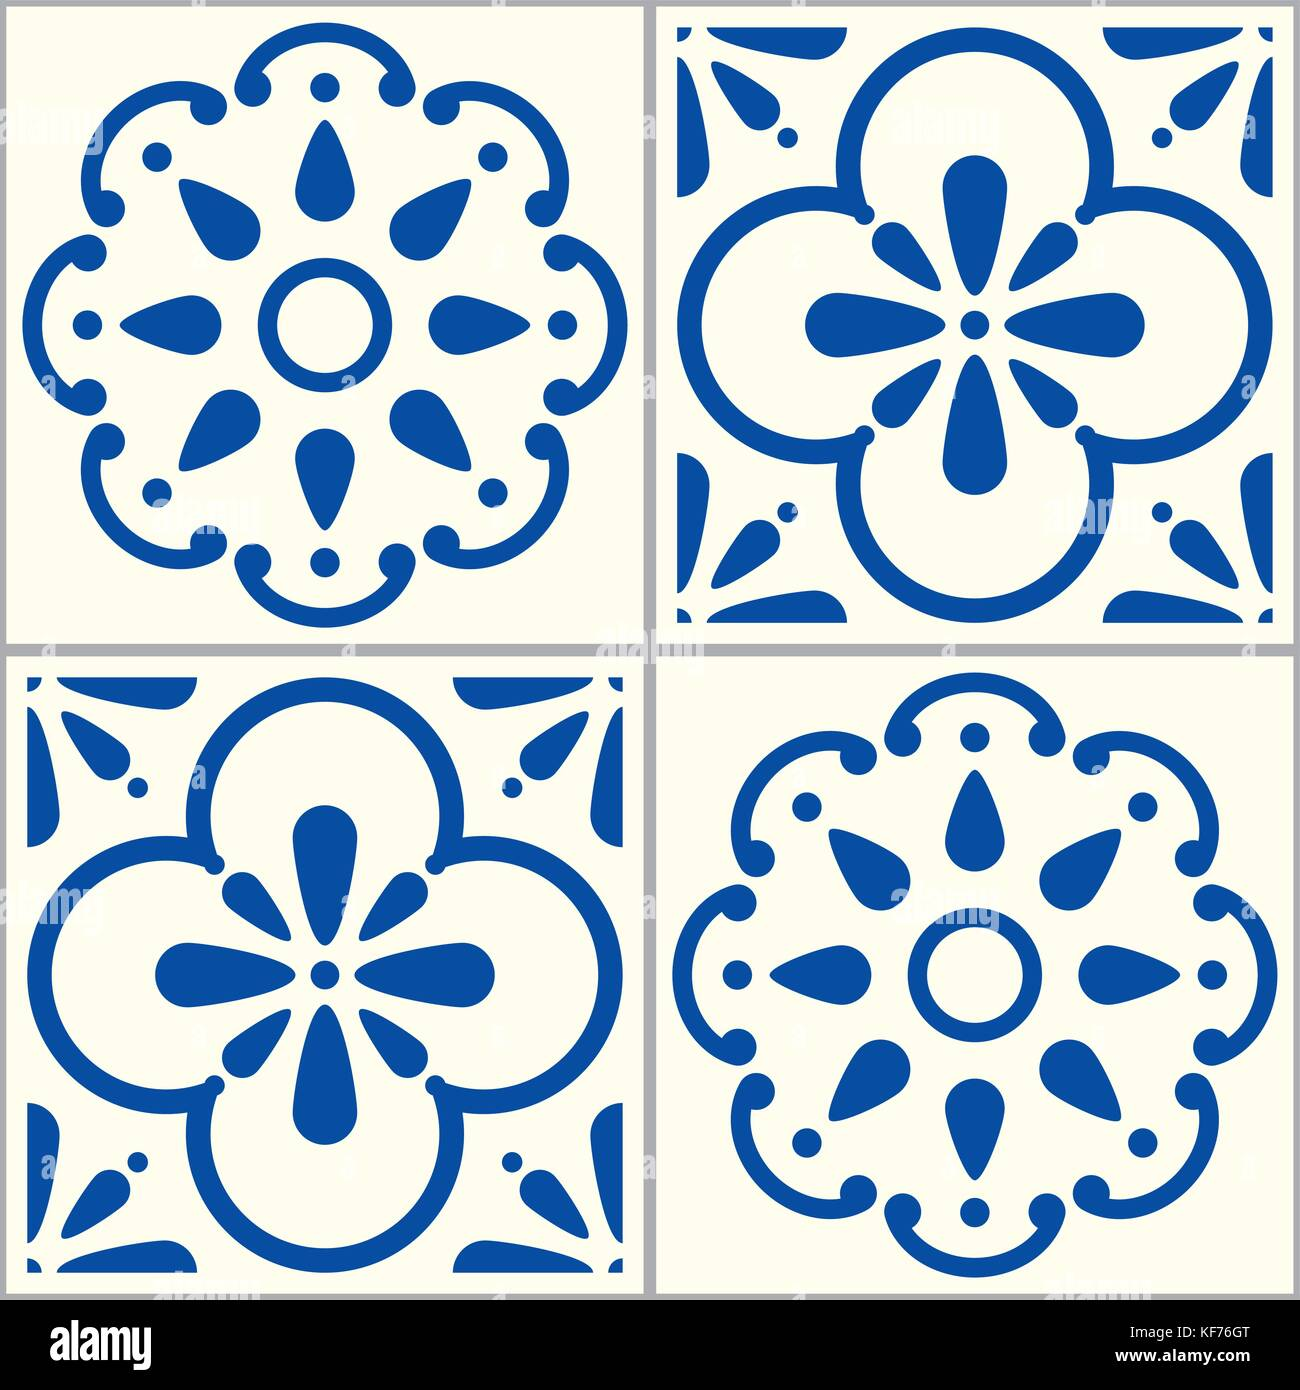 azulejos portugiesische vektor fliesen muster lissabon nahtlose indigo blue tile design gesetzt. Black Bedroom Furniture Sets. Home Design Ideas